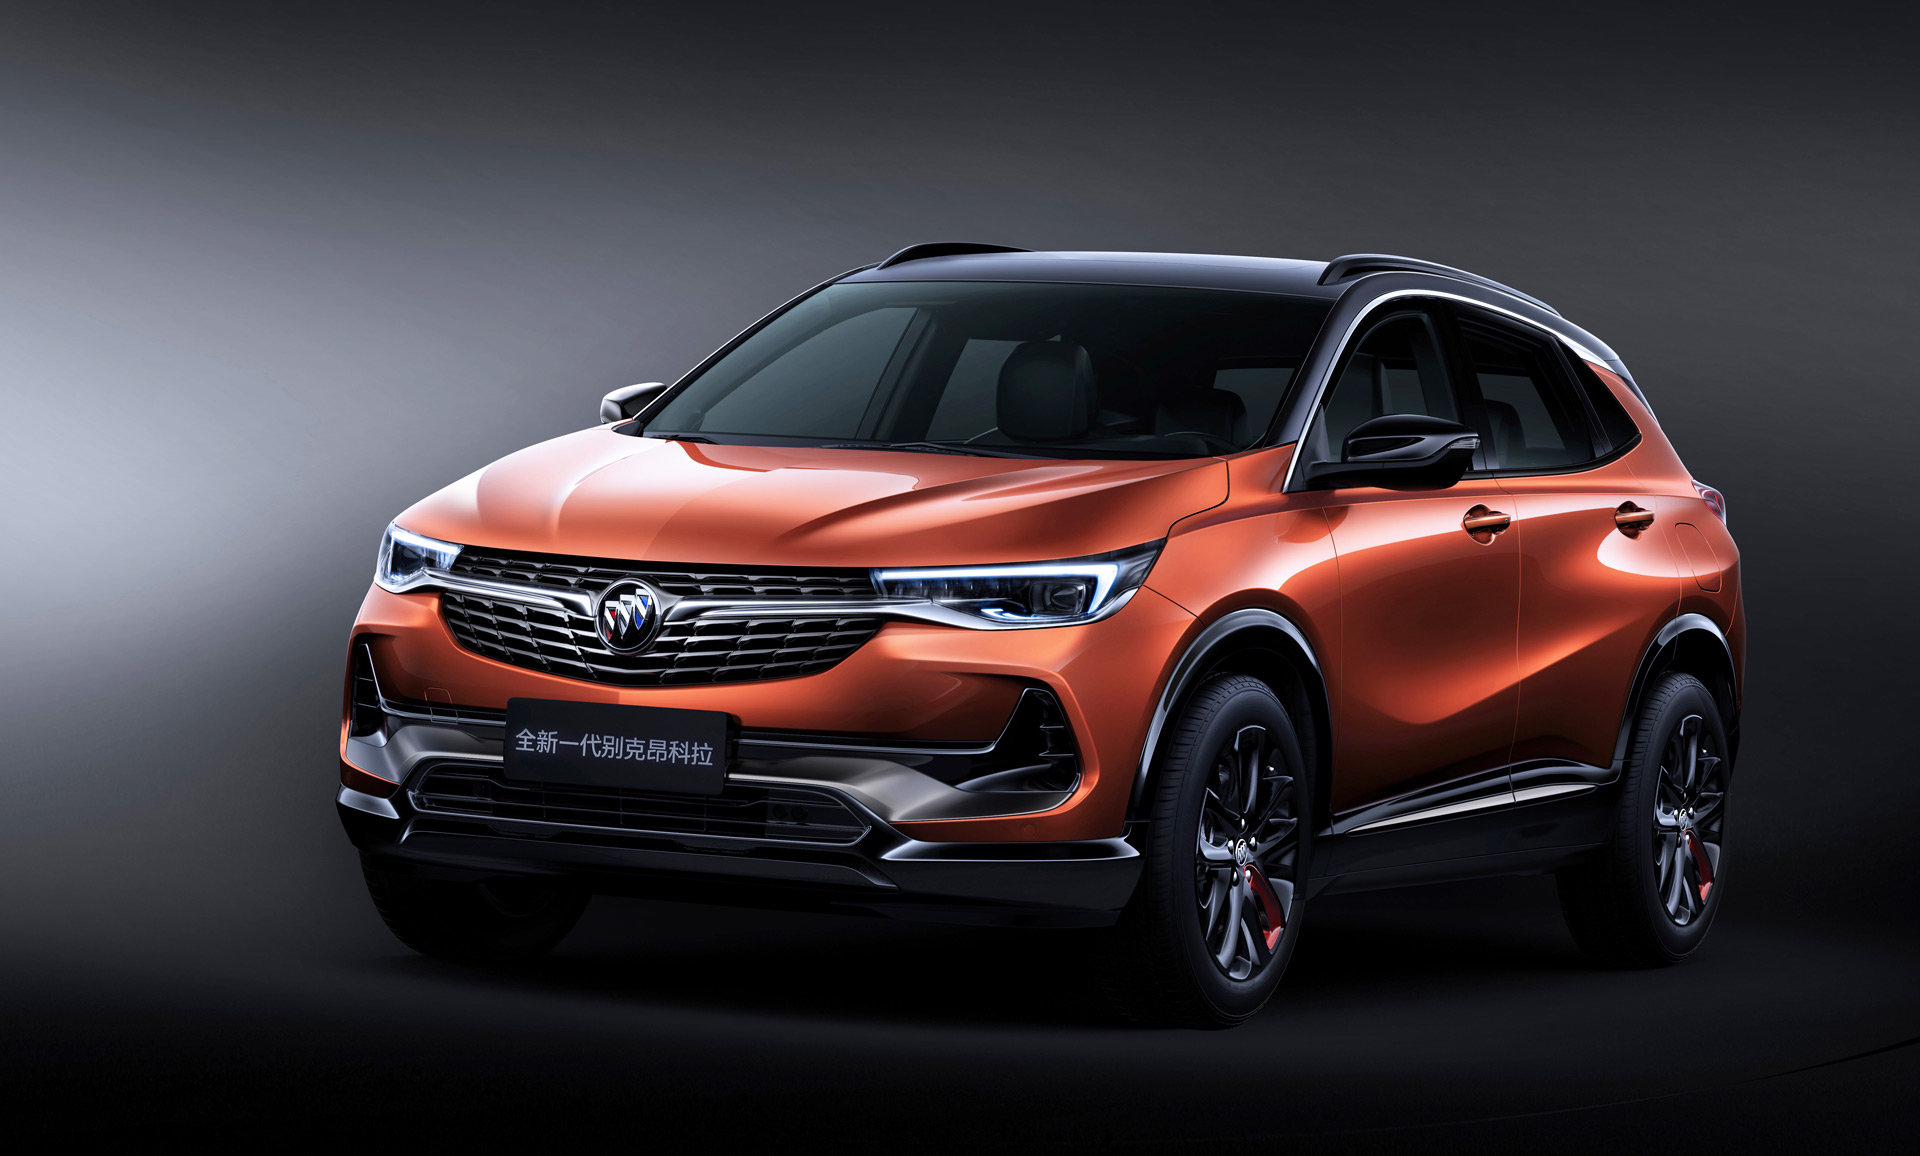 2020 Buick Encore Revealed At 2019 Shanghai Auto Show